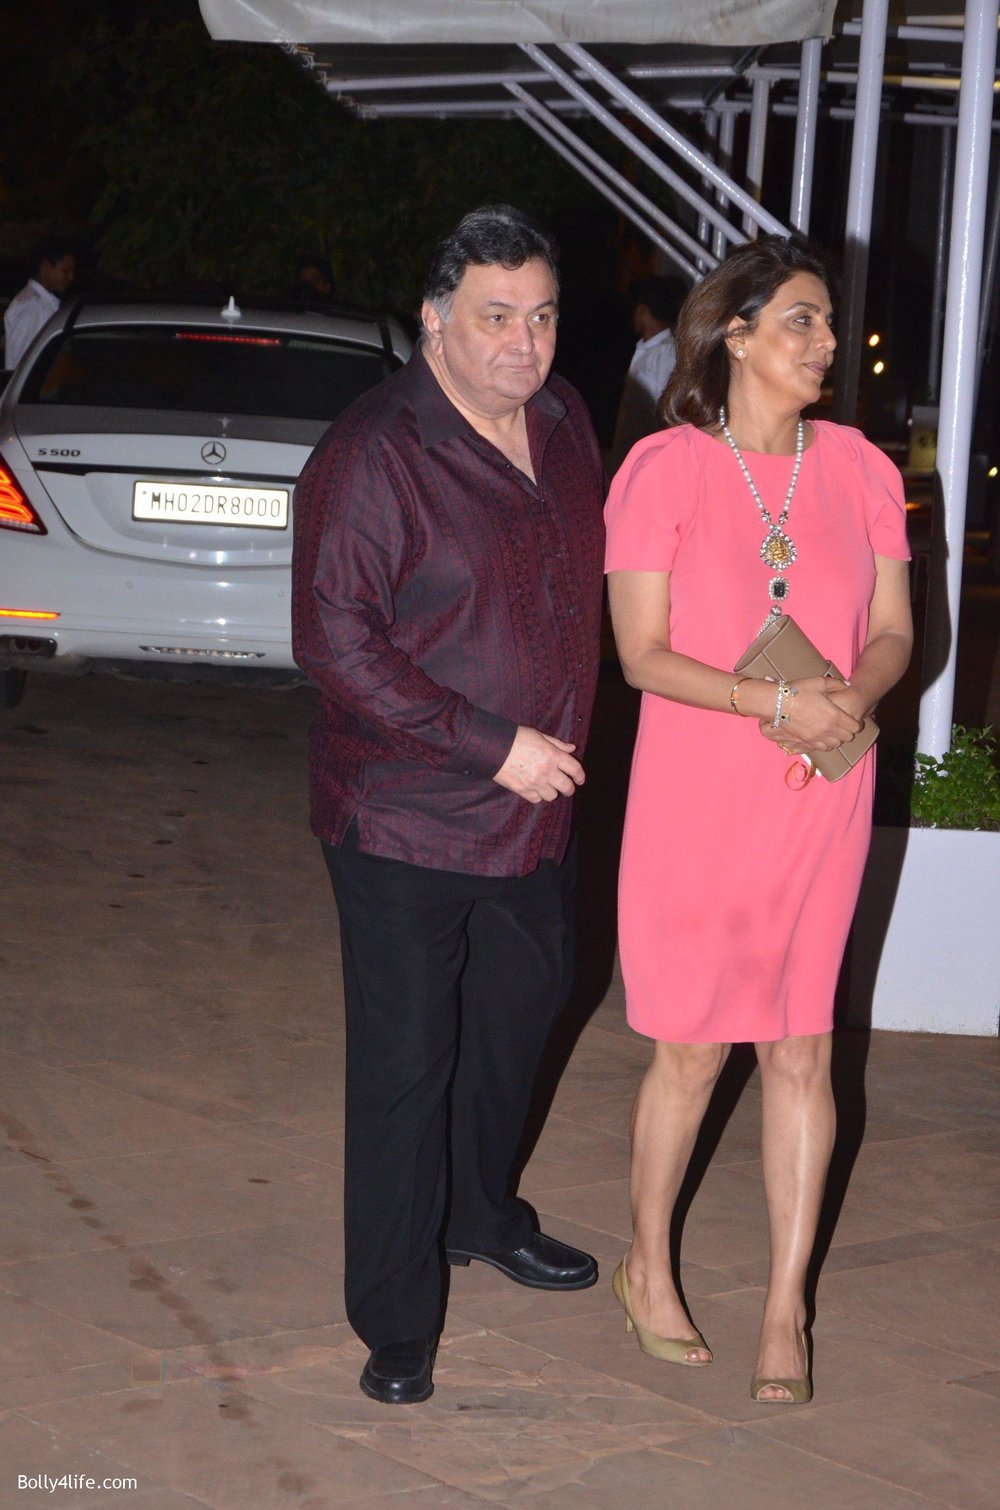 Rishi-Kapoor-Neetu-Singh-at-Reema-jain-bday-party-in-Amadeus-NCPA-on-28th-Sept-2016-777.jpg